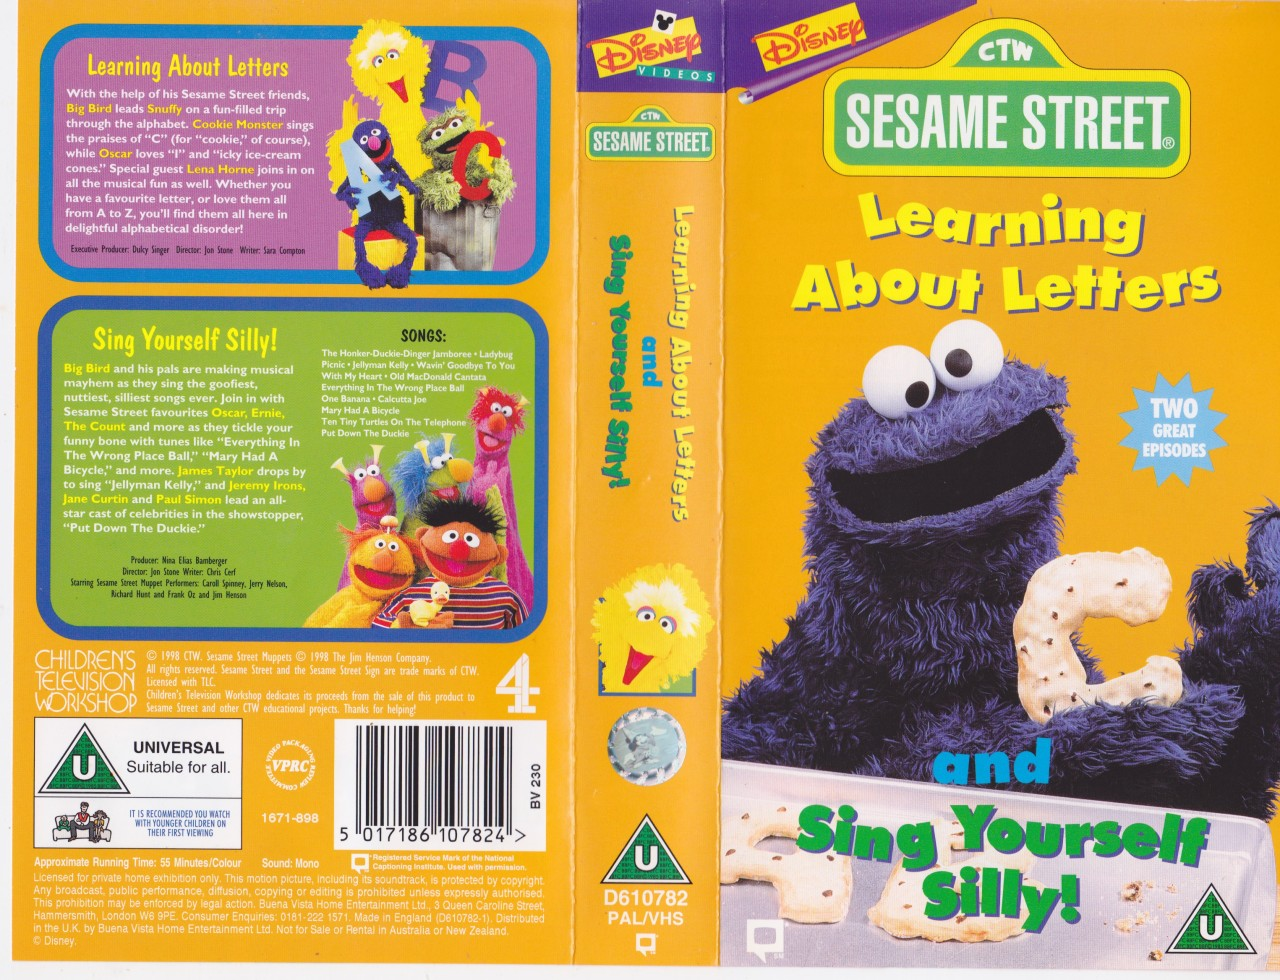 sesame street learning about letters sesame learning about letters and more vhs 24809 | 581665251 o